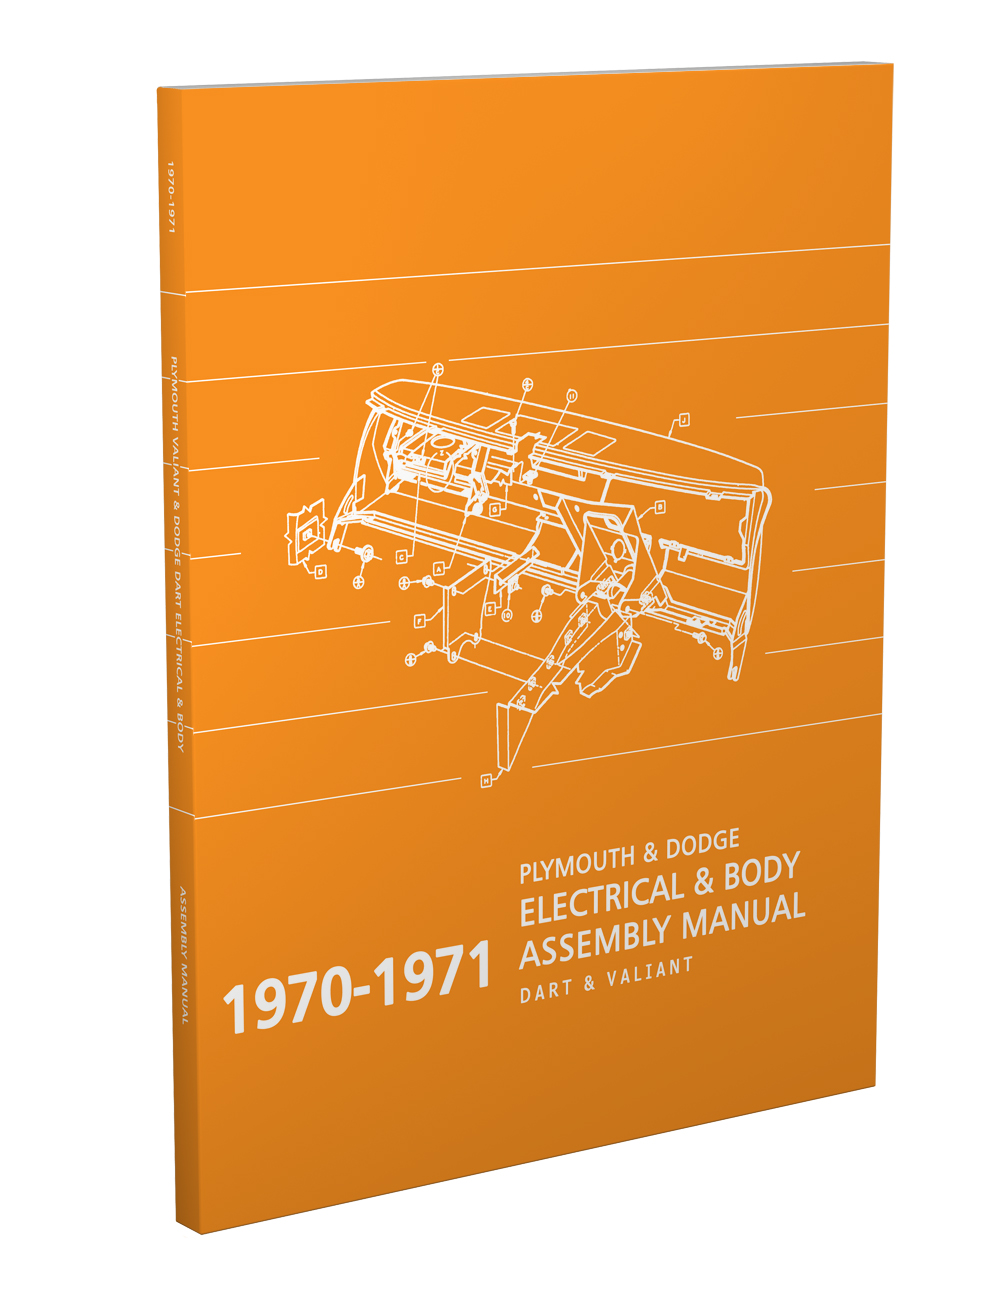 medium resolution of 1970 1971 dart and valiant electrical and body assembly manual reprint